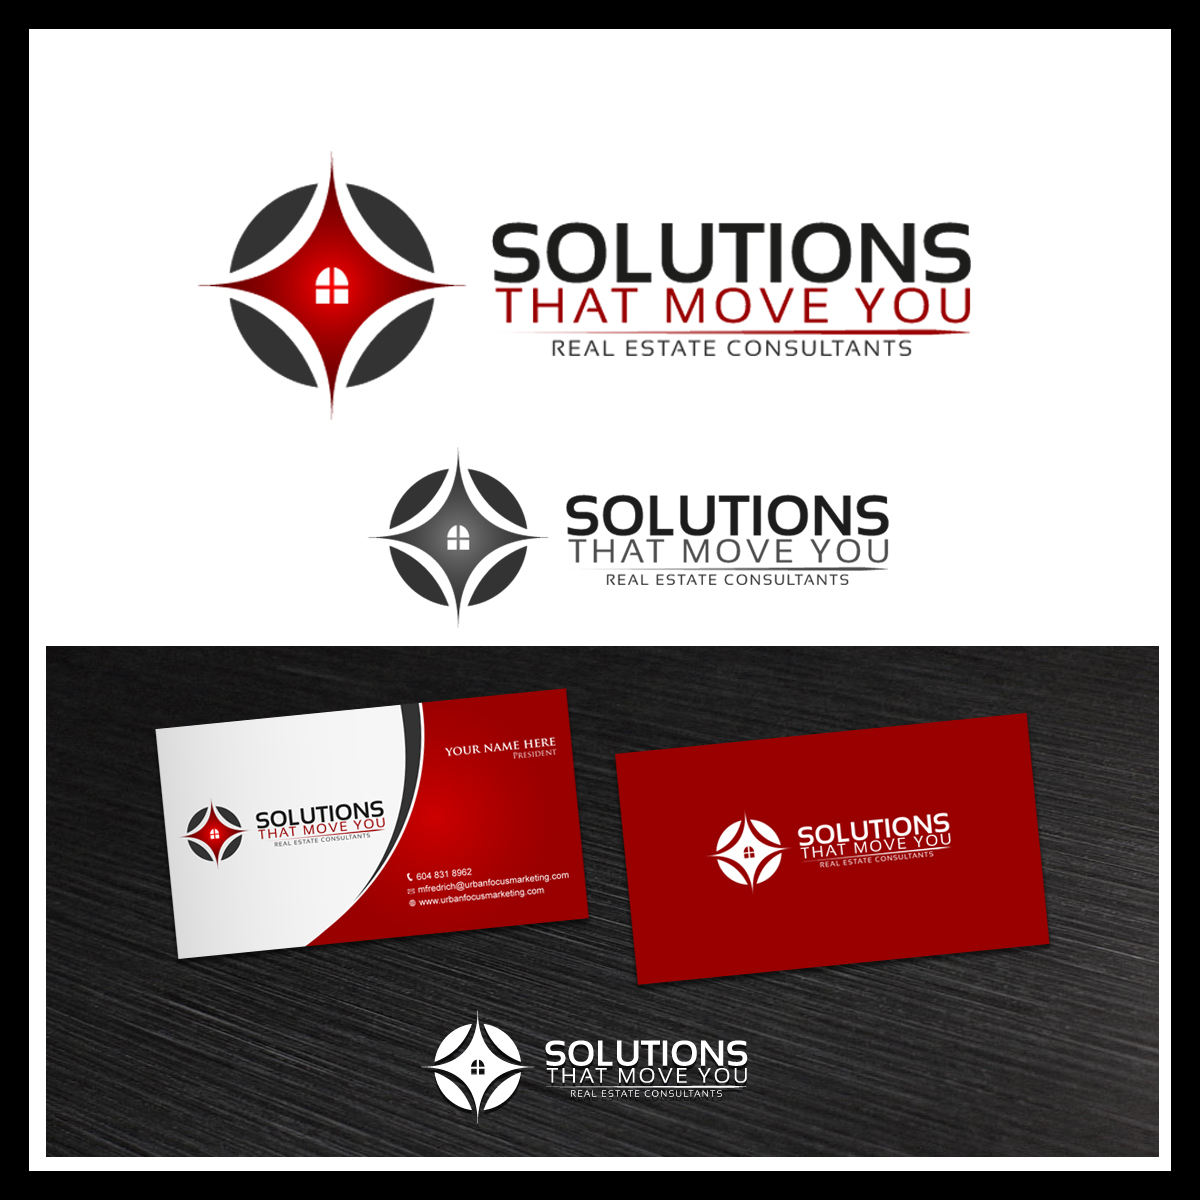 Logo Design by pixdesign - Entry No. 174 in the Logo Design Contest Imaginative Logo Design for Solutions That Move You.